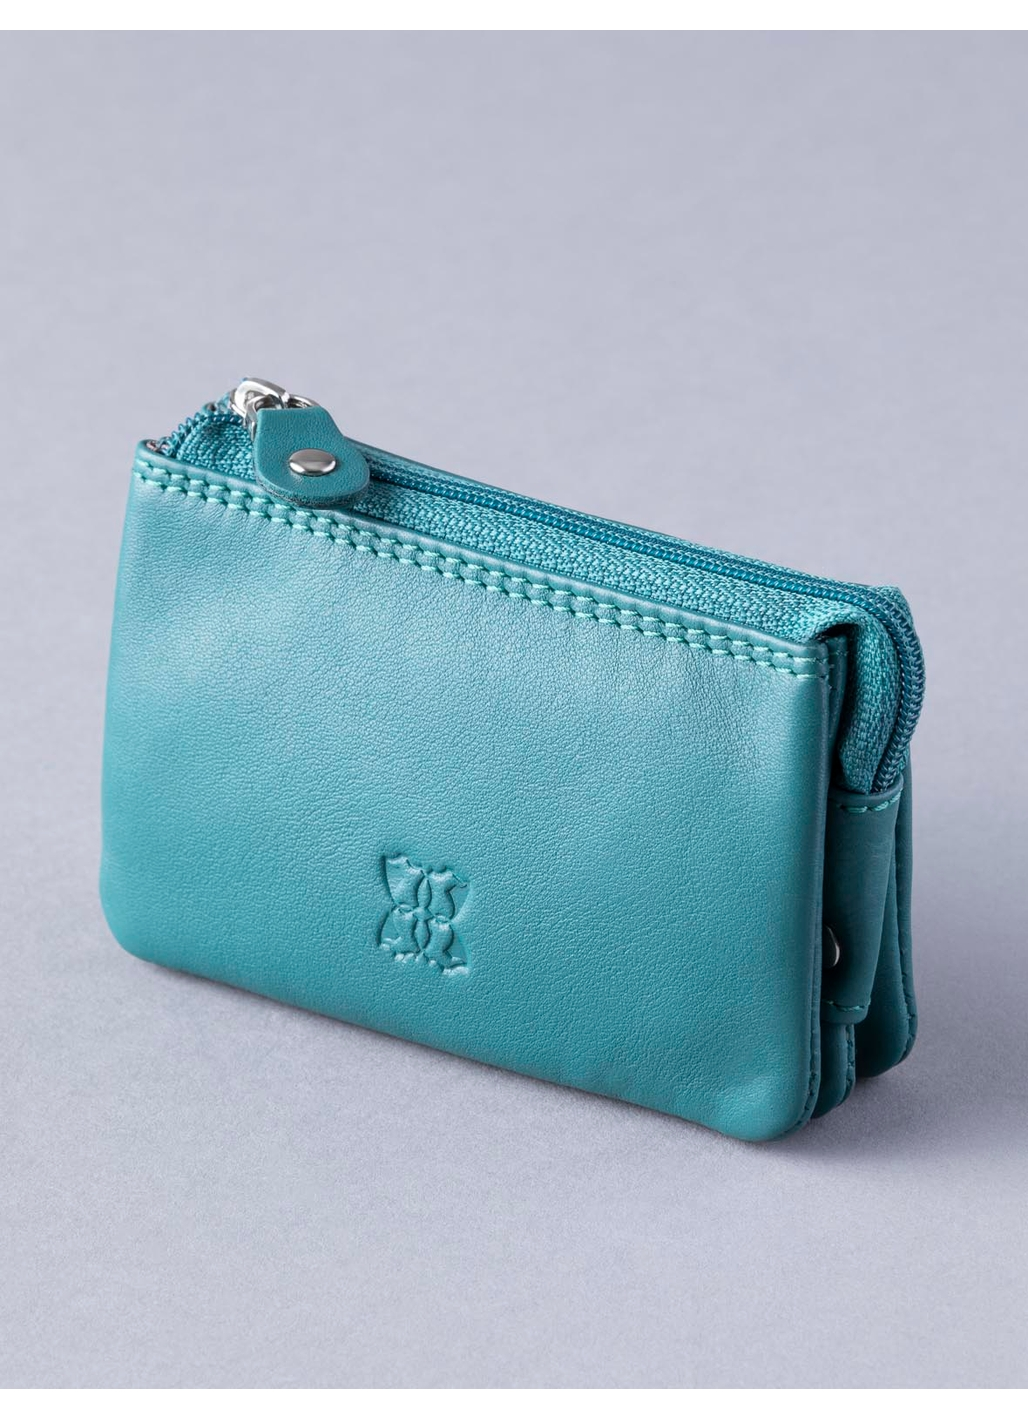 Leather Coin Purse in Teal